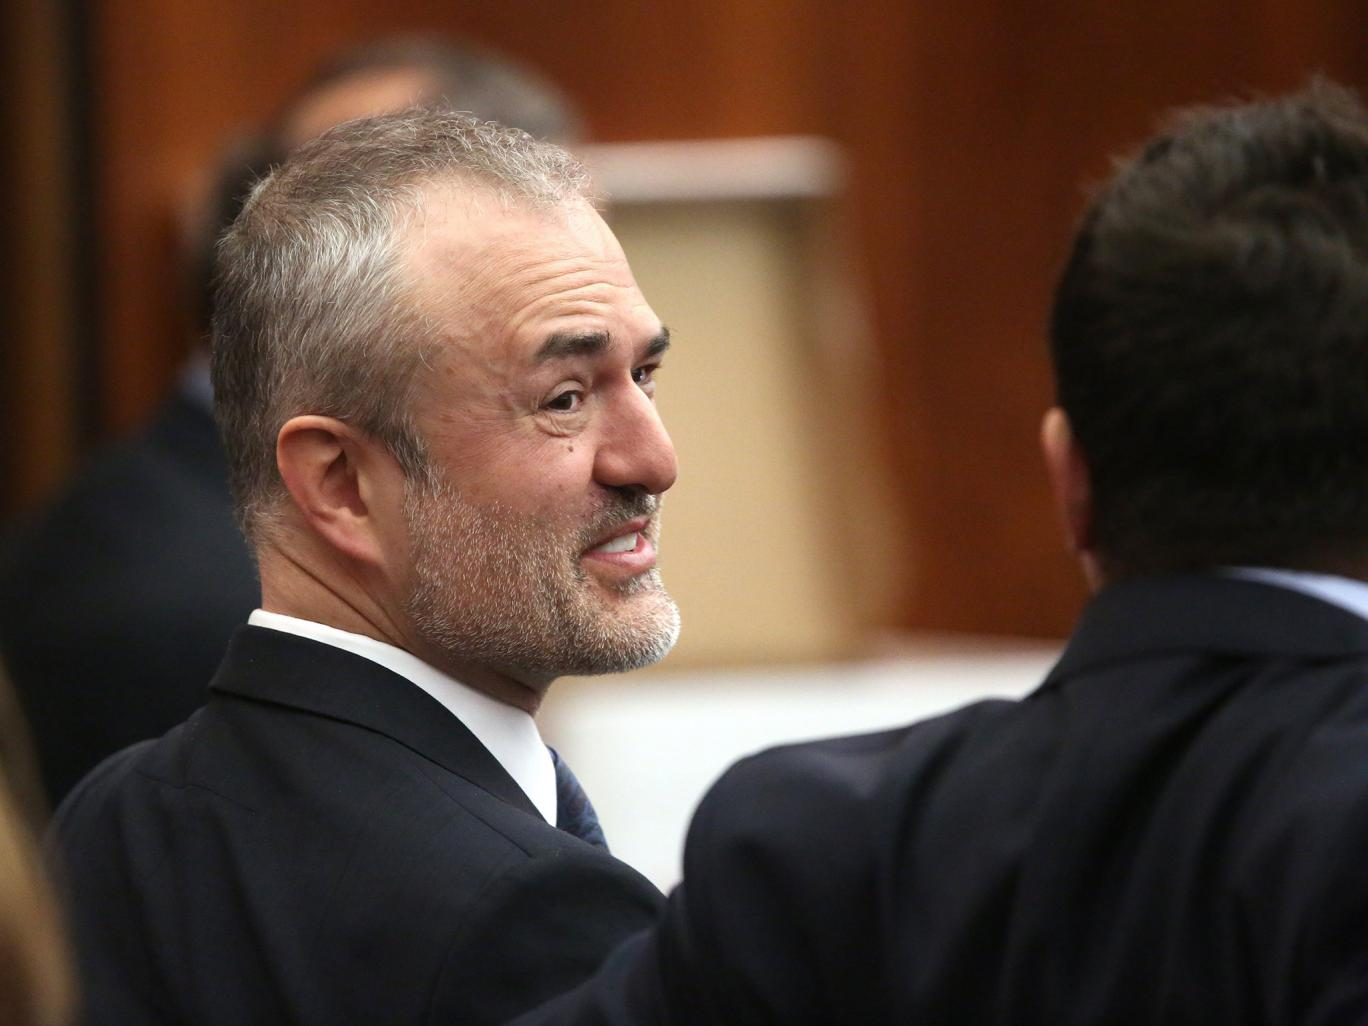 Gawker Media kurucusu ve CEO'su Nick Denton / Fotoğraf: Reuters